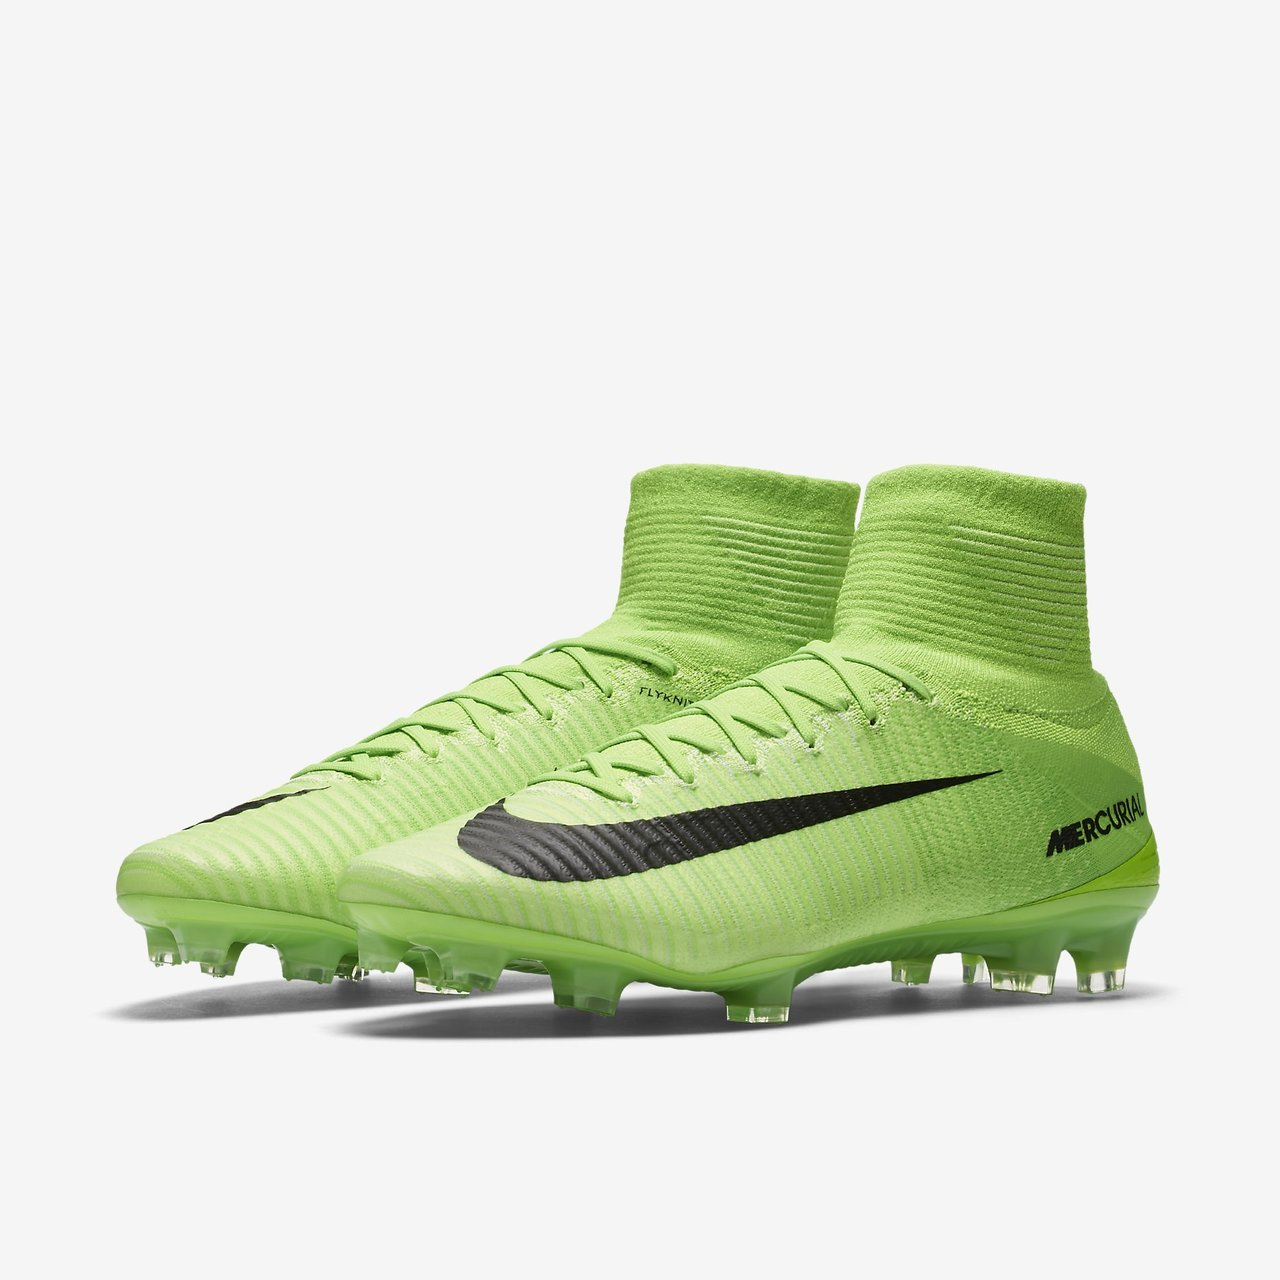 Nike Mercurial Superfly V Fg Radiation Flare Pack